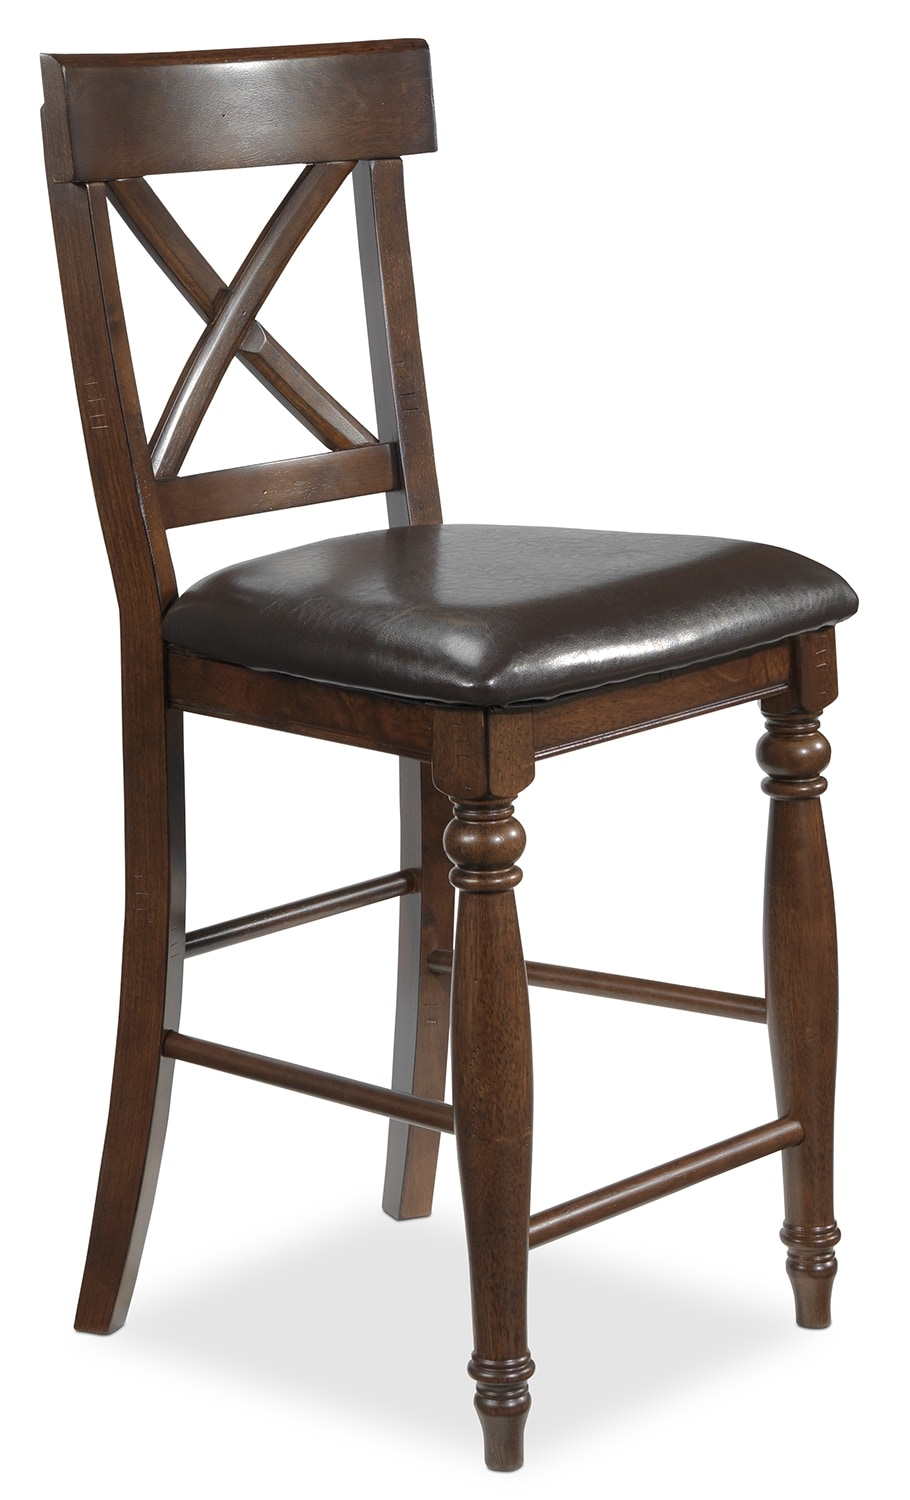 Kingstown Pub Chair - Chocolate